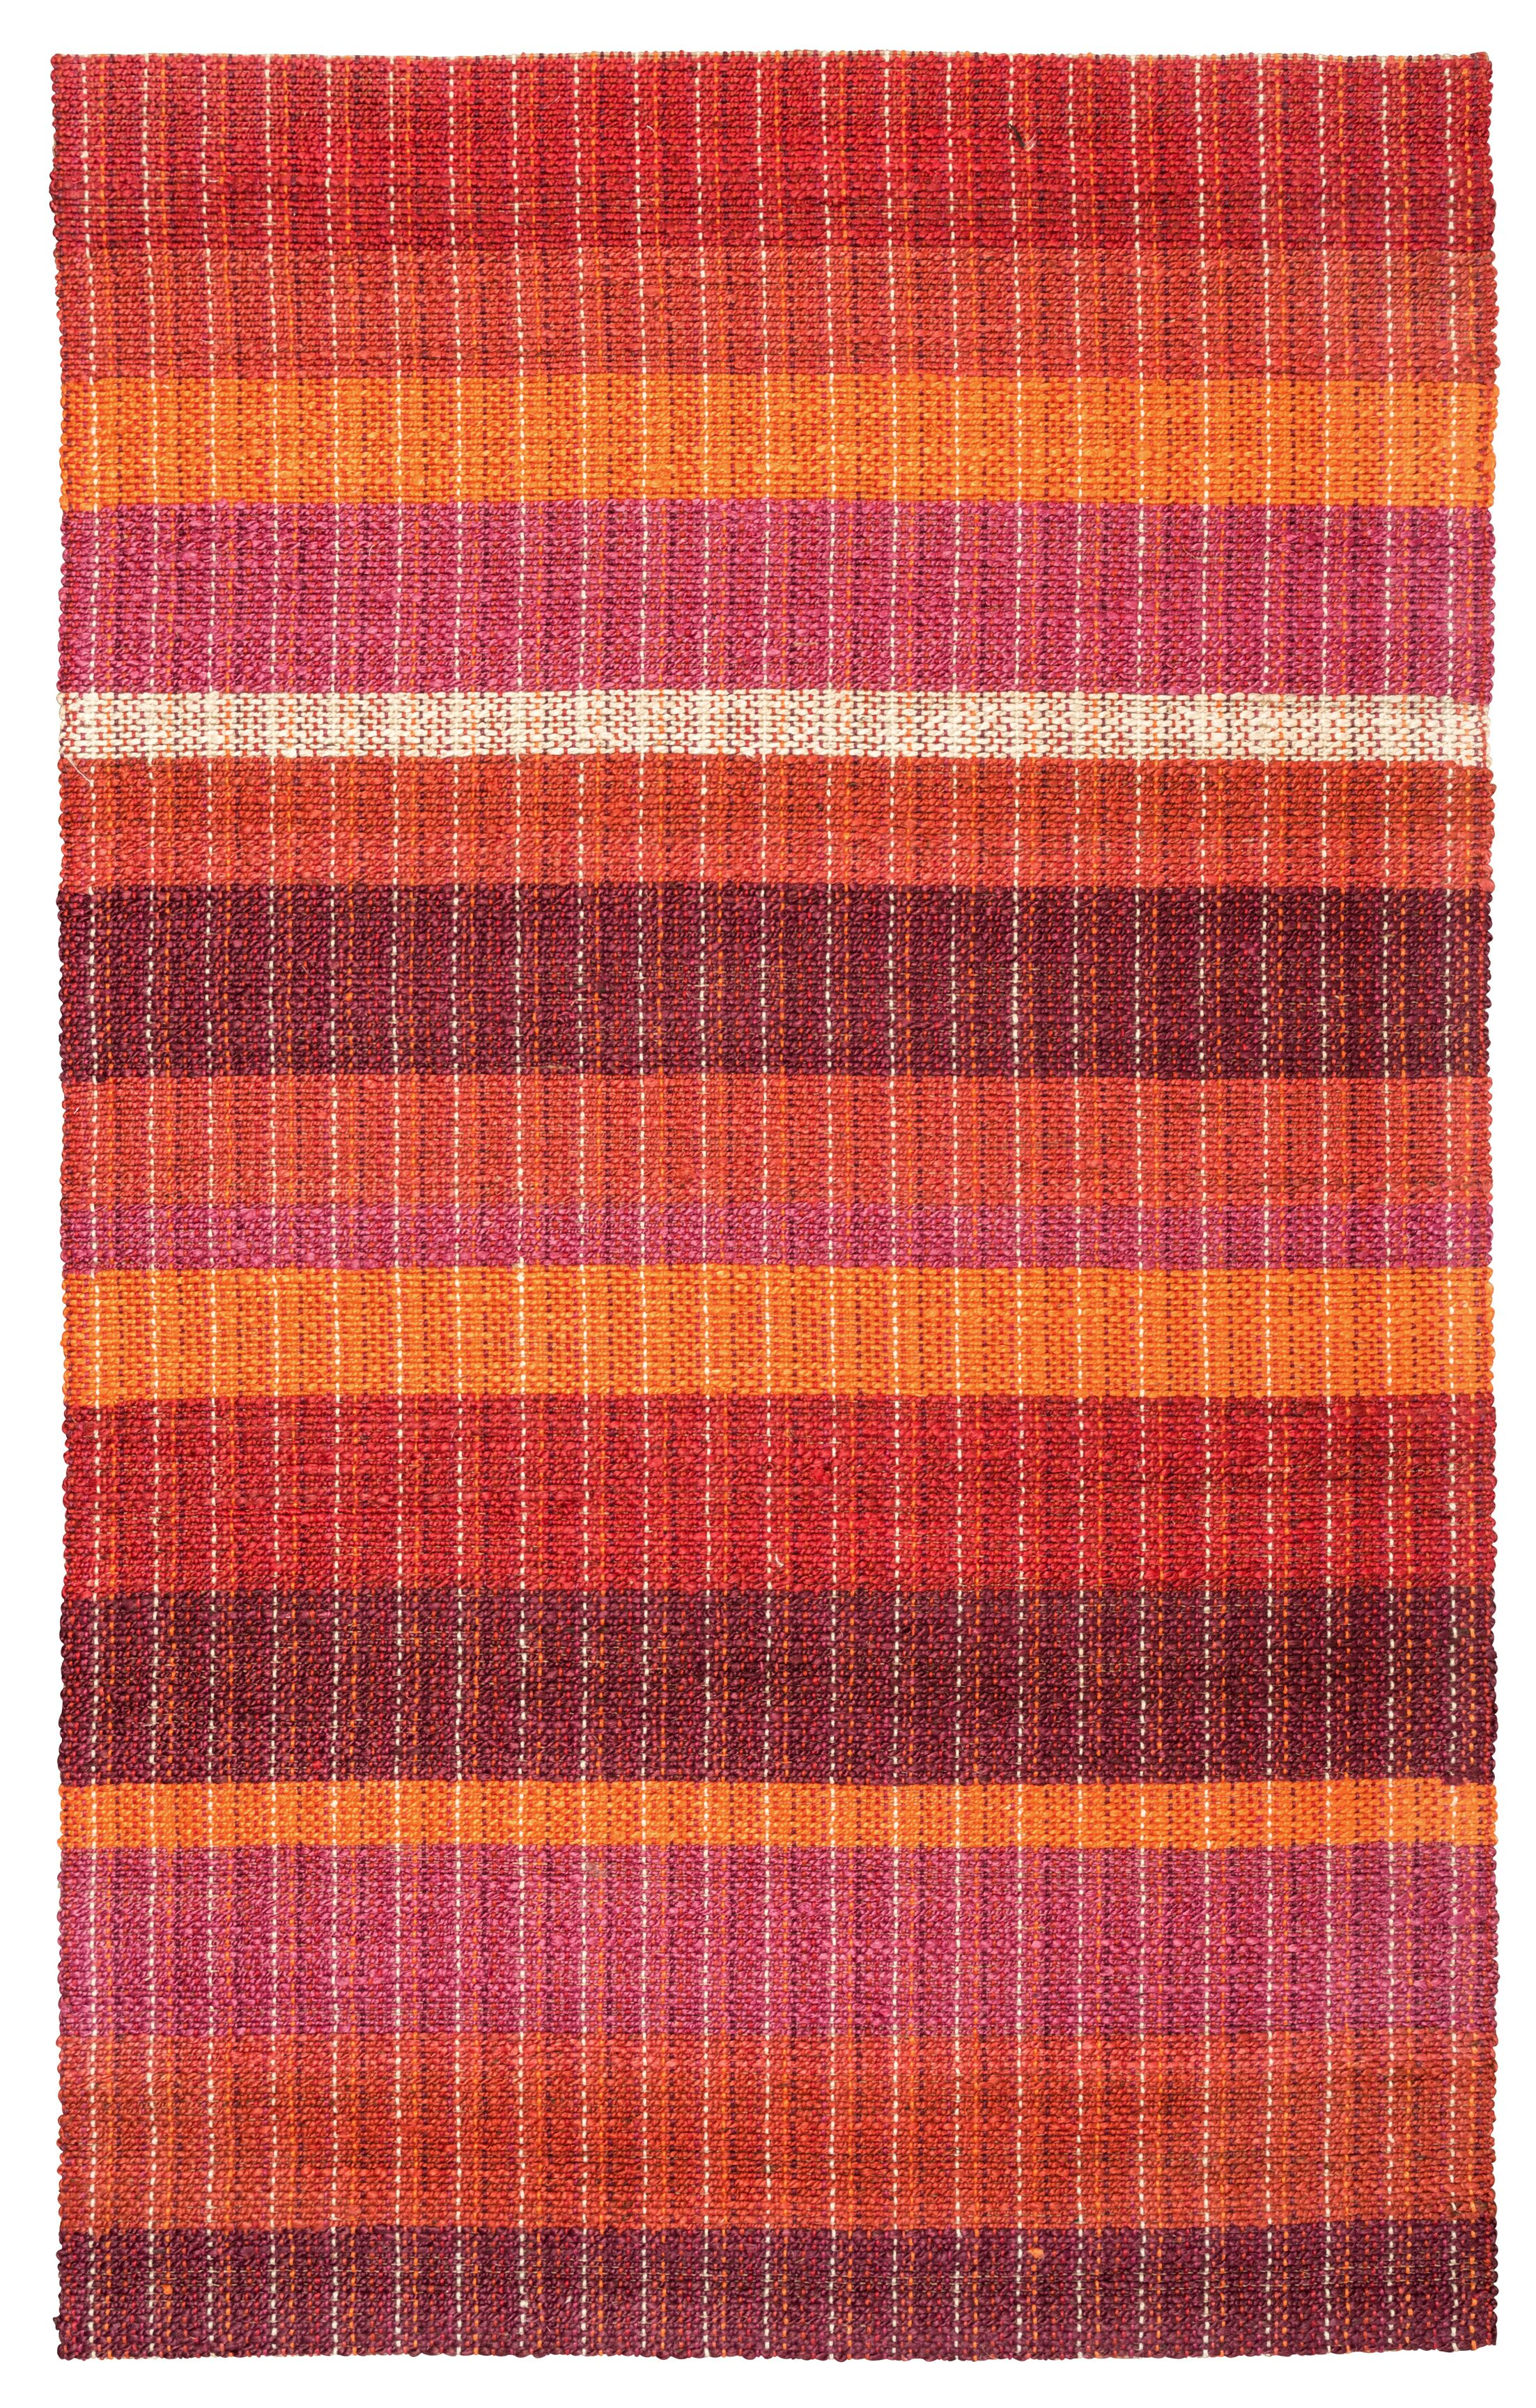 Rosella Hand-Braided Sunrise Area Rug Rug Size: 5' x 8'